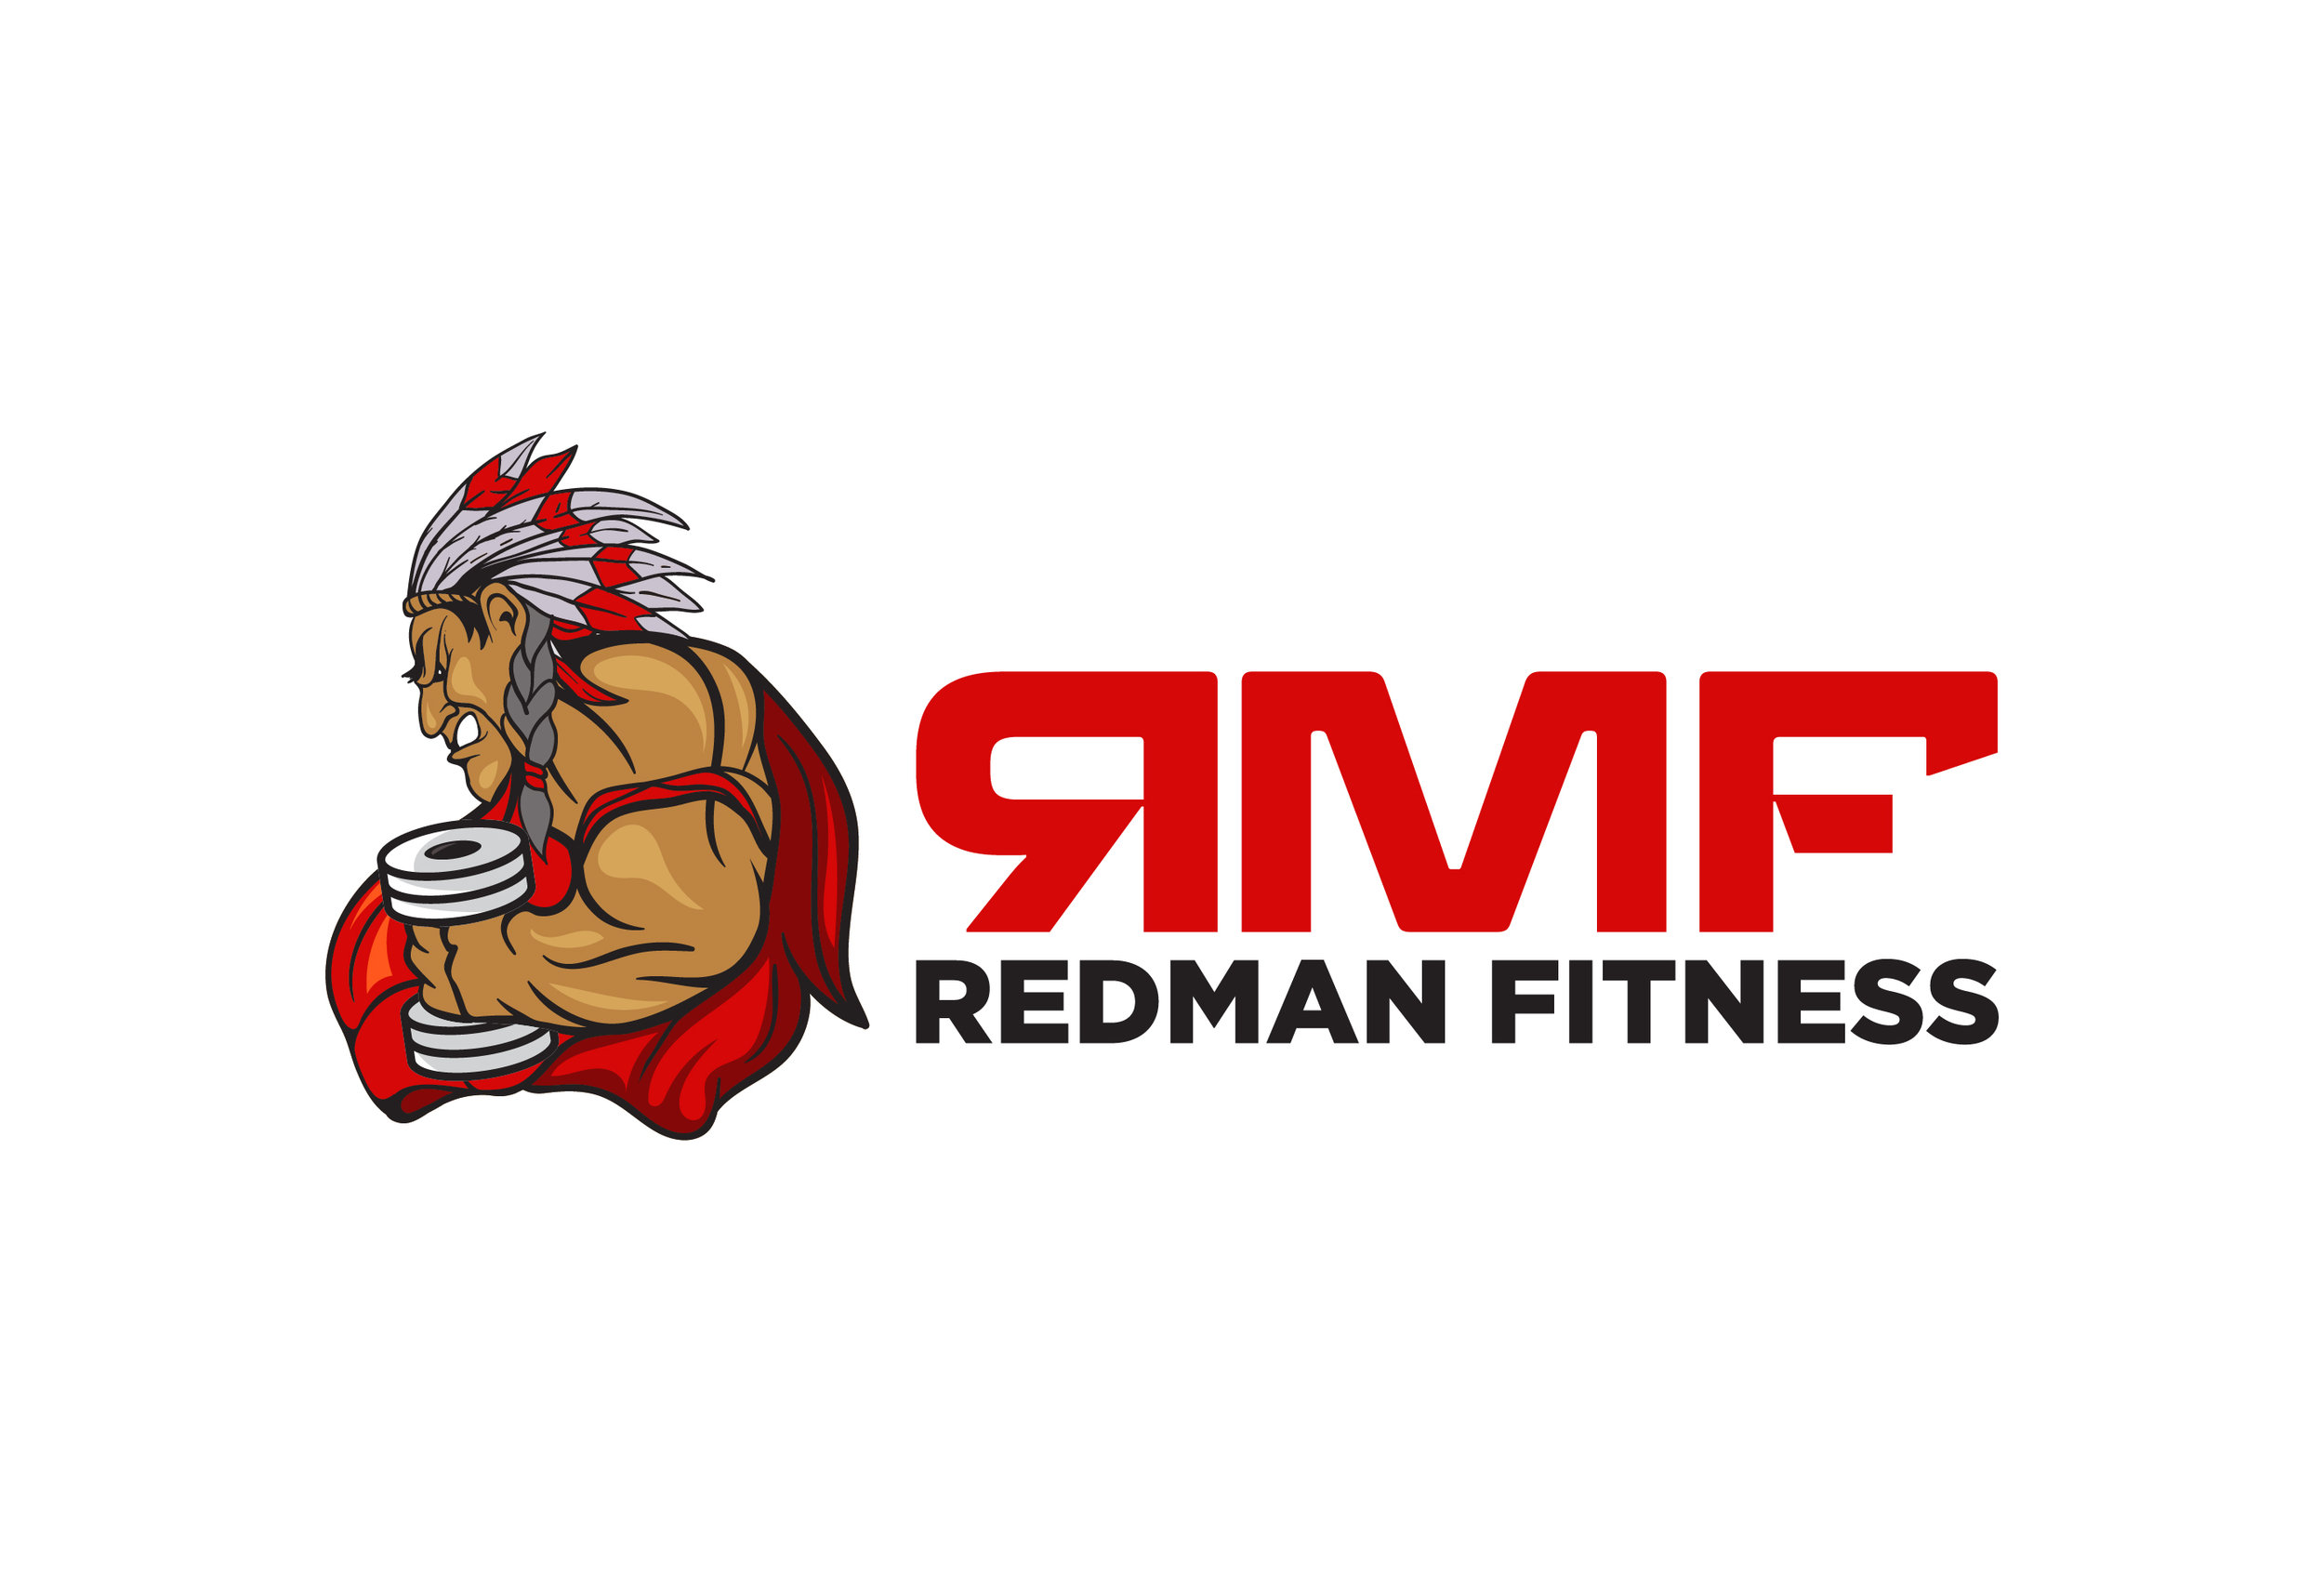 - Contact MeRMFtraining316@Gmail.comOperating out of a private gym (Cutz Training Facility) located in Richmond. Please make contact with Redman Fitness before arrival at location.